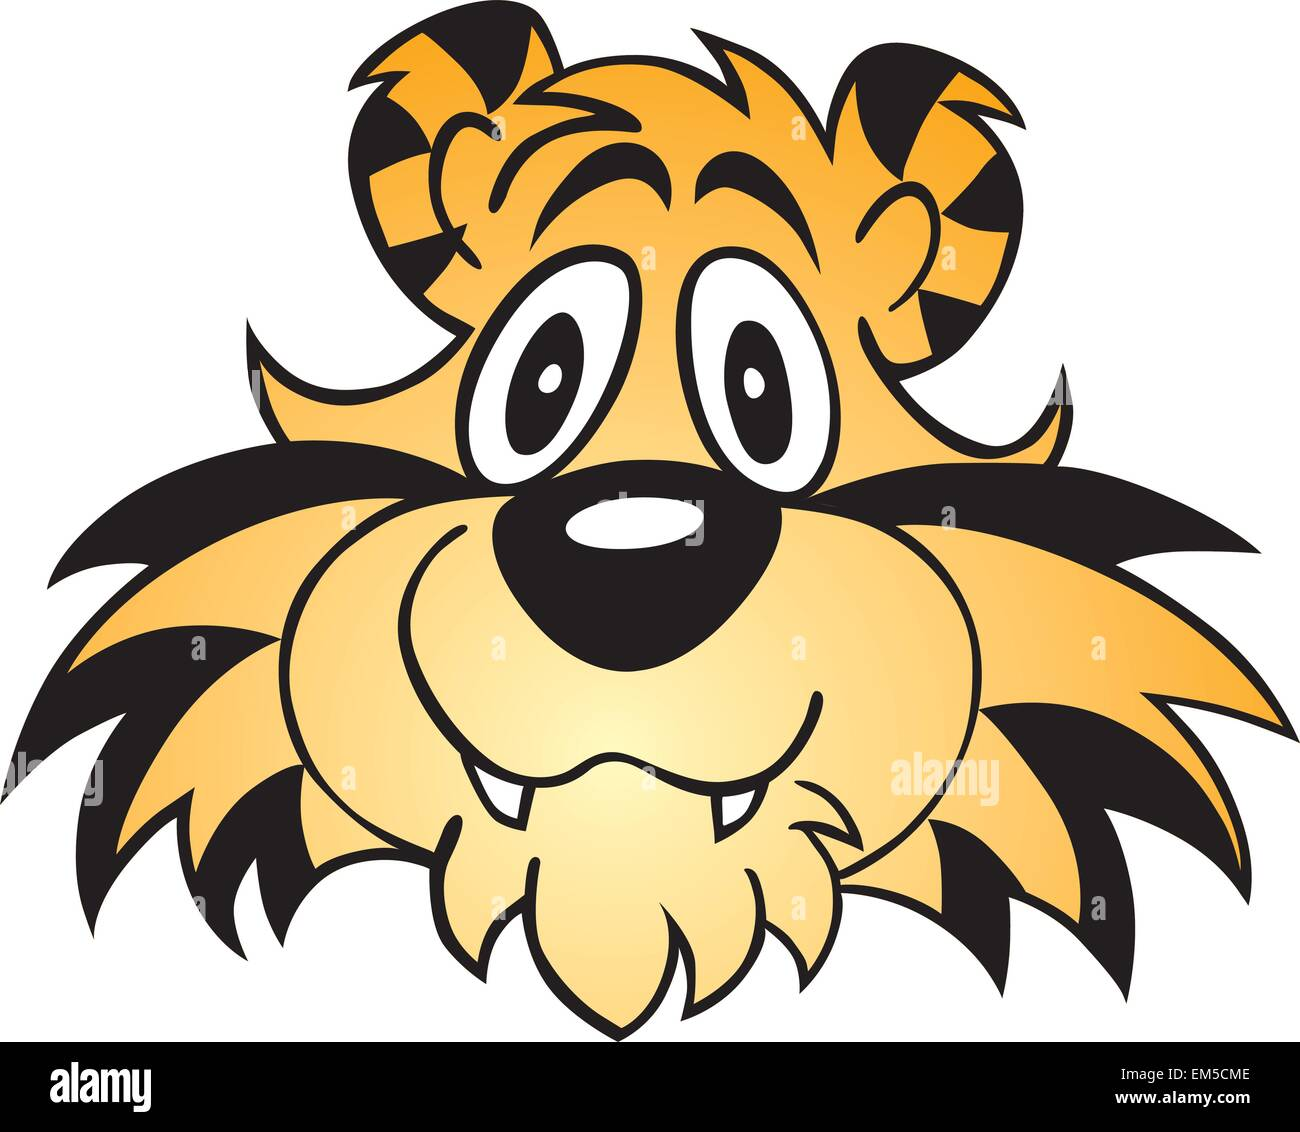 illustrated cartoon tiger face isolated on white stock vector art rh alamy com cartoon tiger face images cartoon tiger face pictures